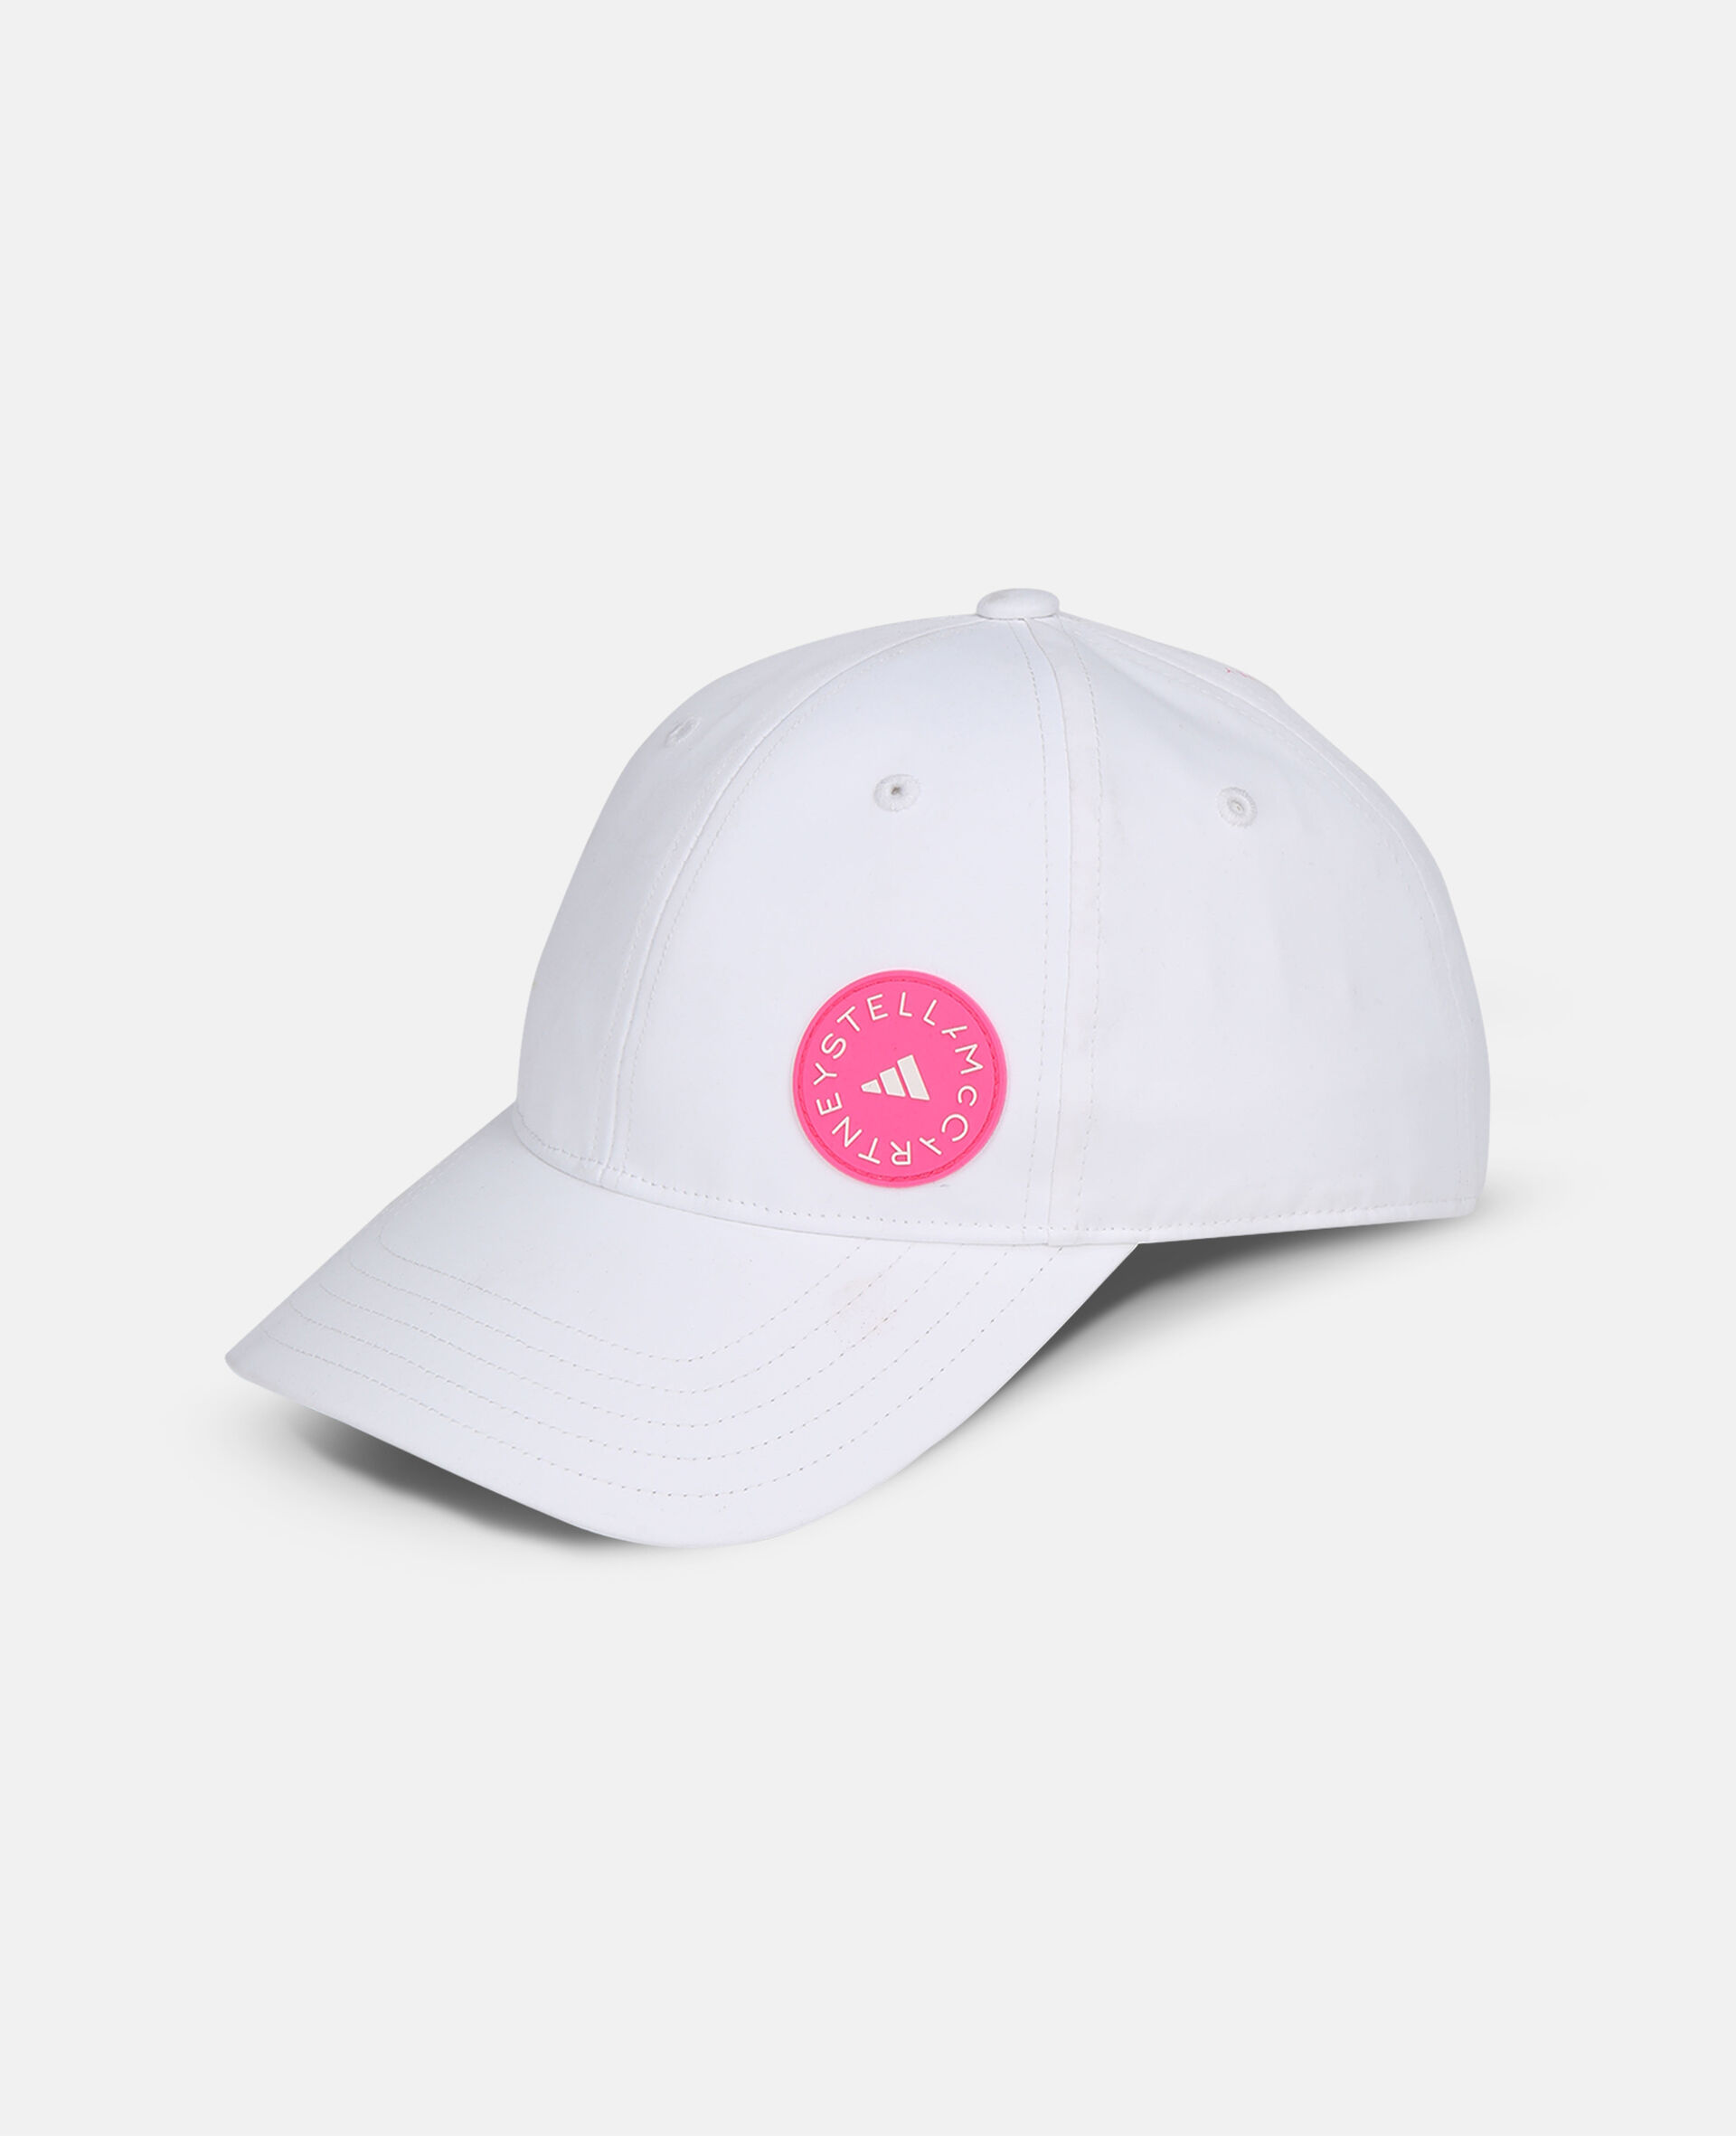 White Cap-White-large